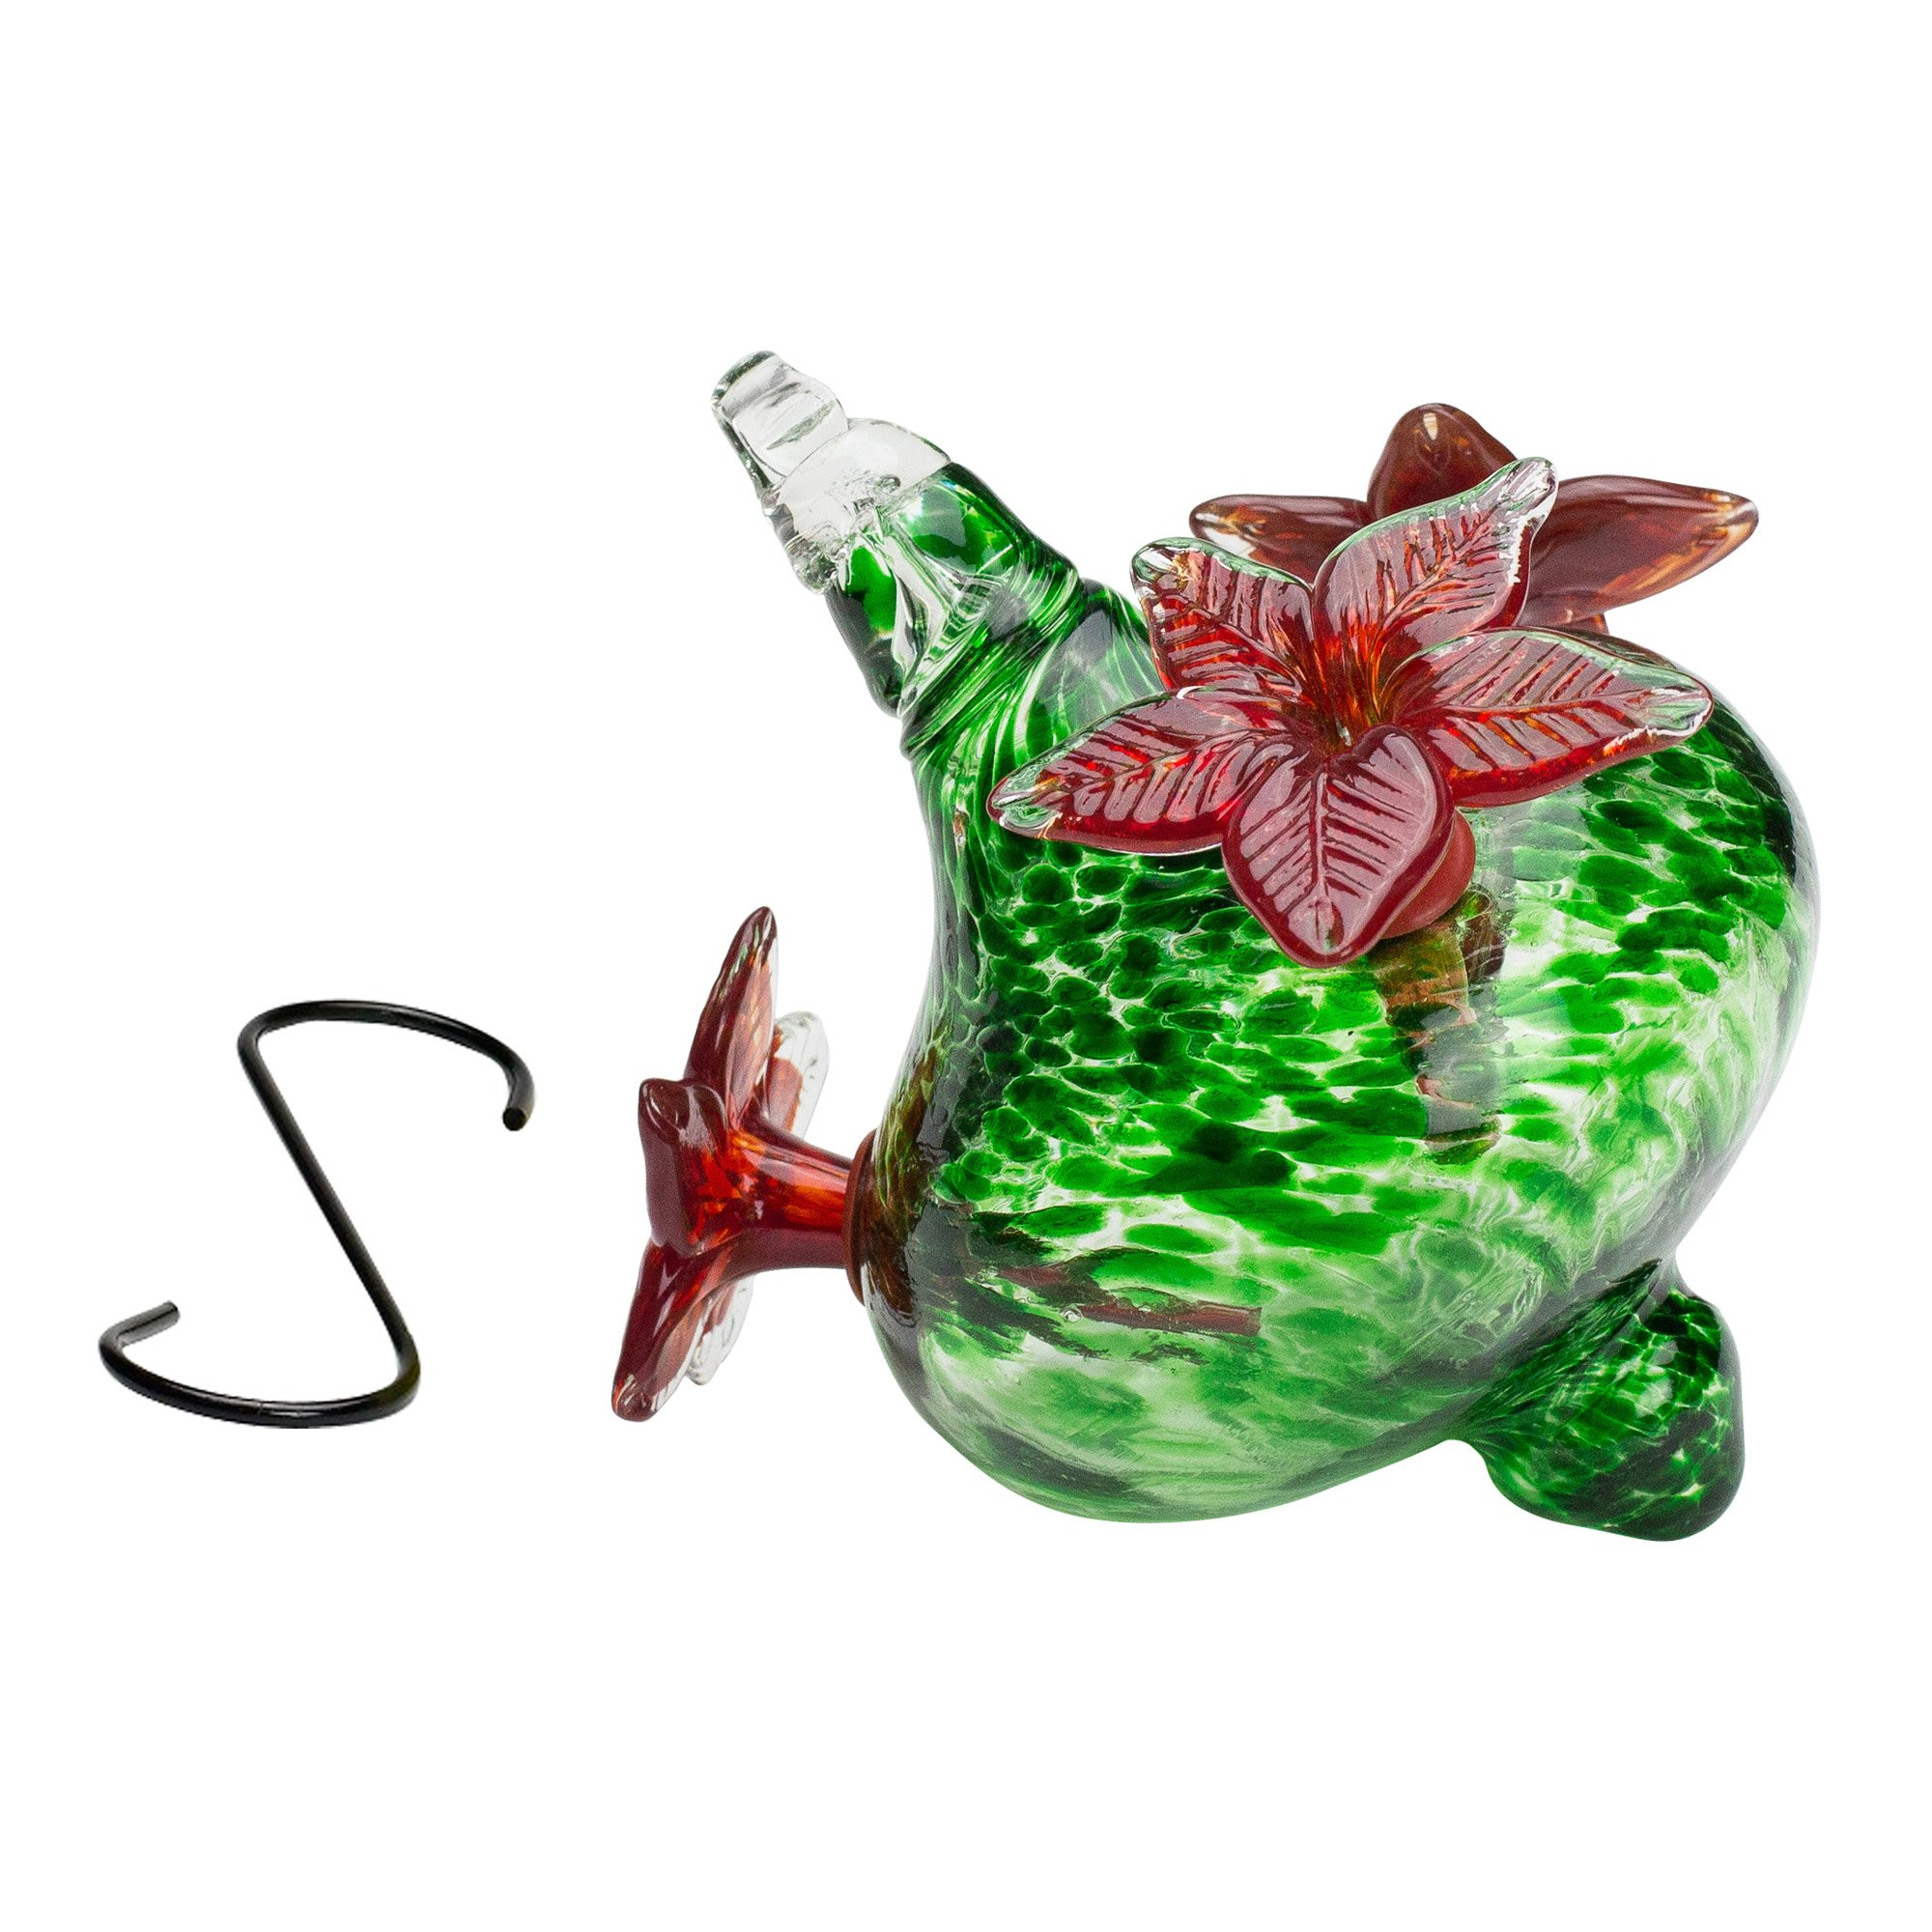 Best Home Products HUMMINGBIRD FEEDER - Blown Glass | Green Bouquet Cap with Red Flowers 16 ounces